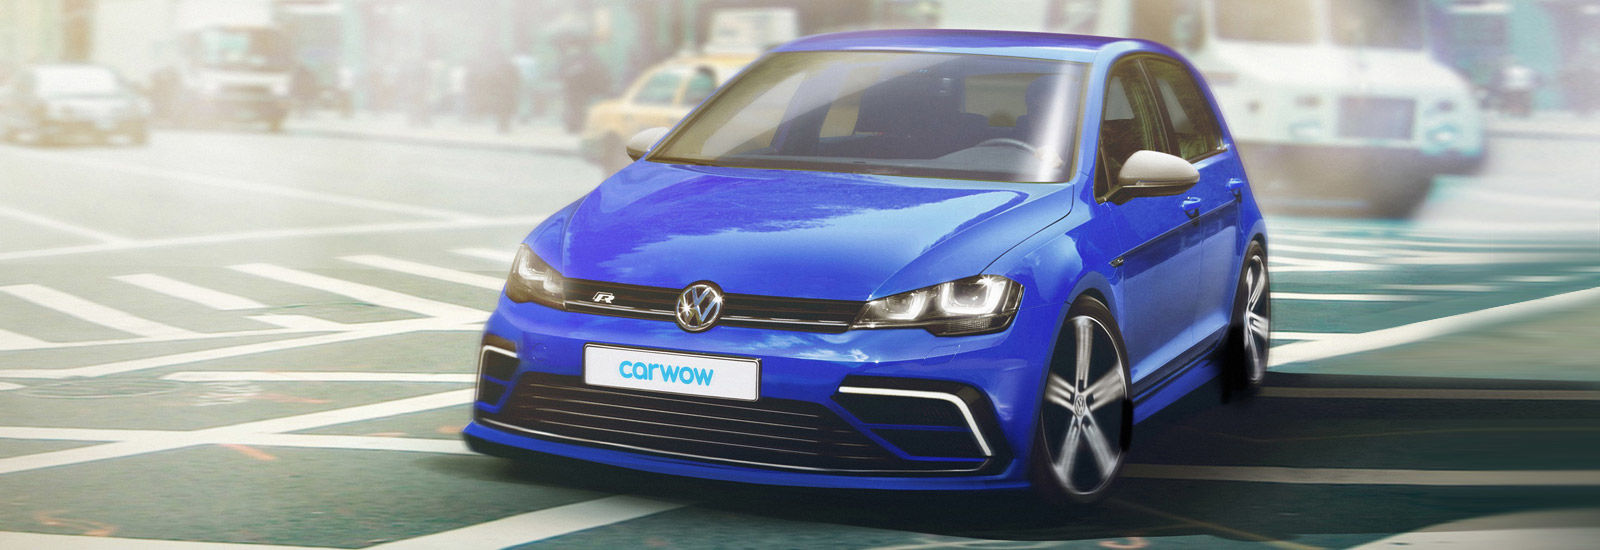 vw golf mk8 2018 price specs release date carwow. Black Bedroom Furniture Sets. Home Design Ideas